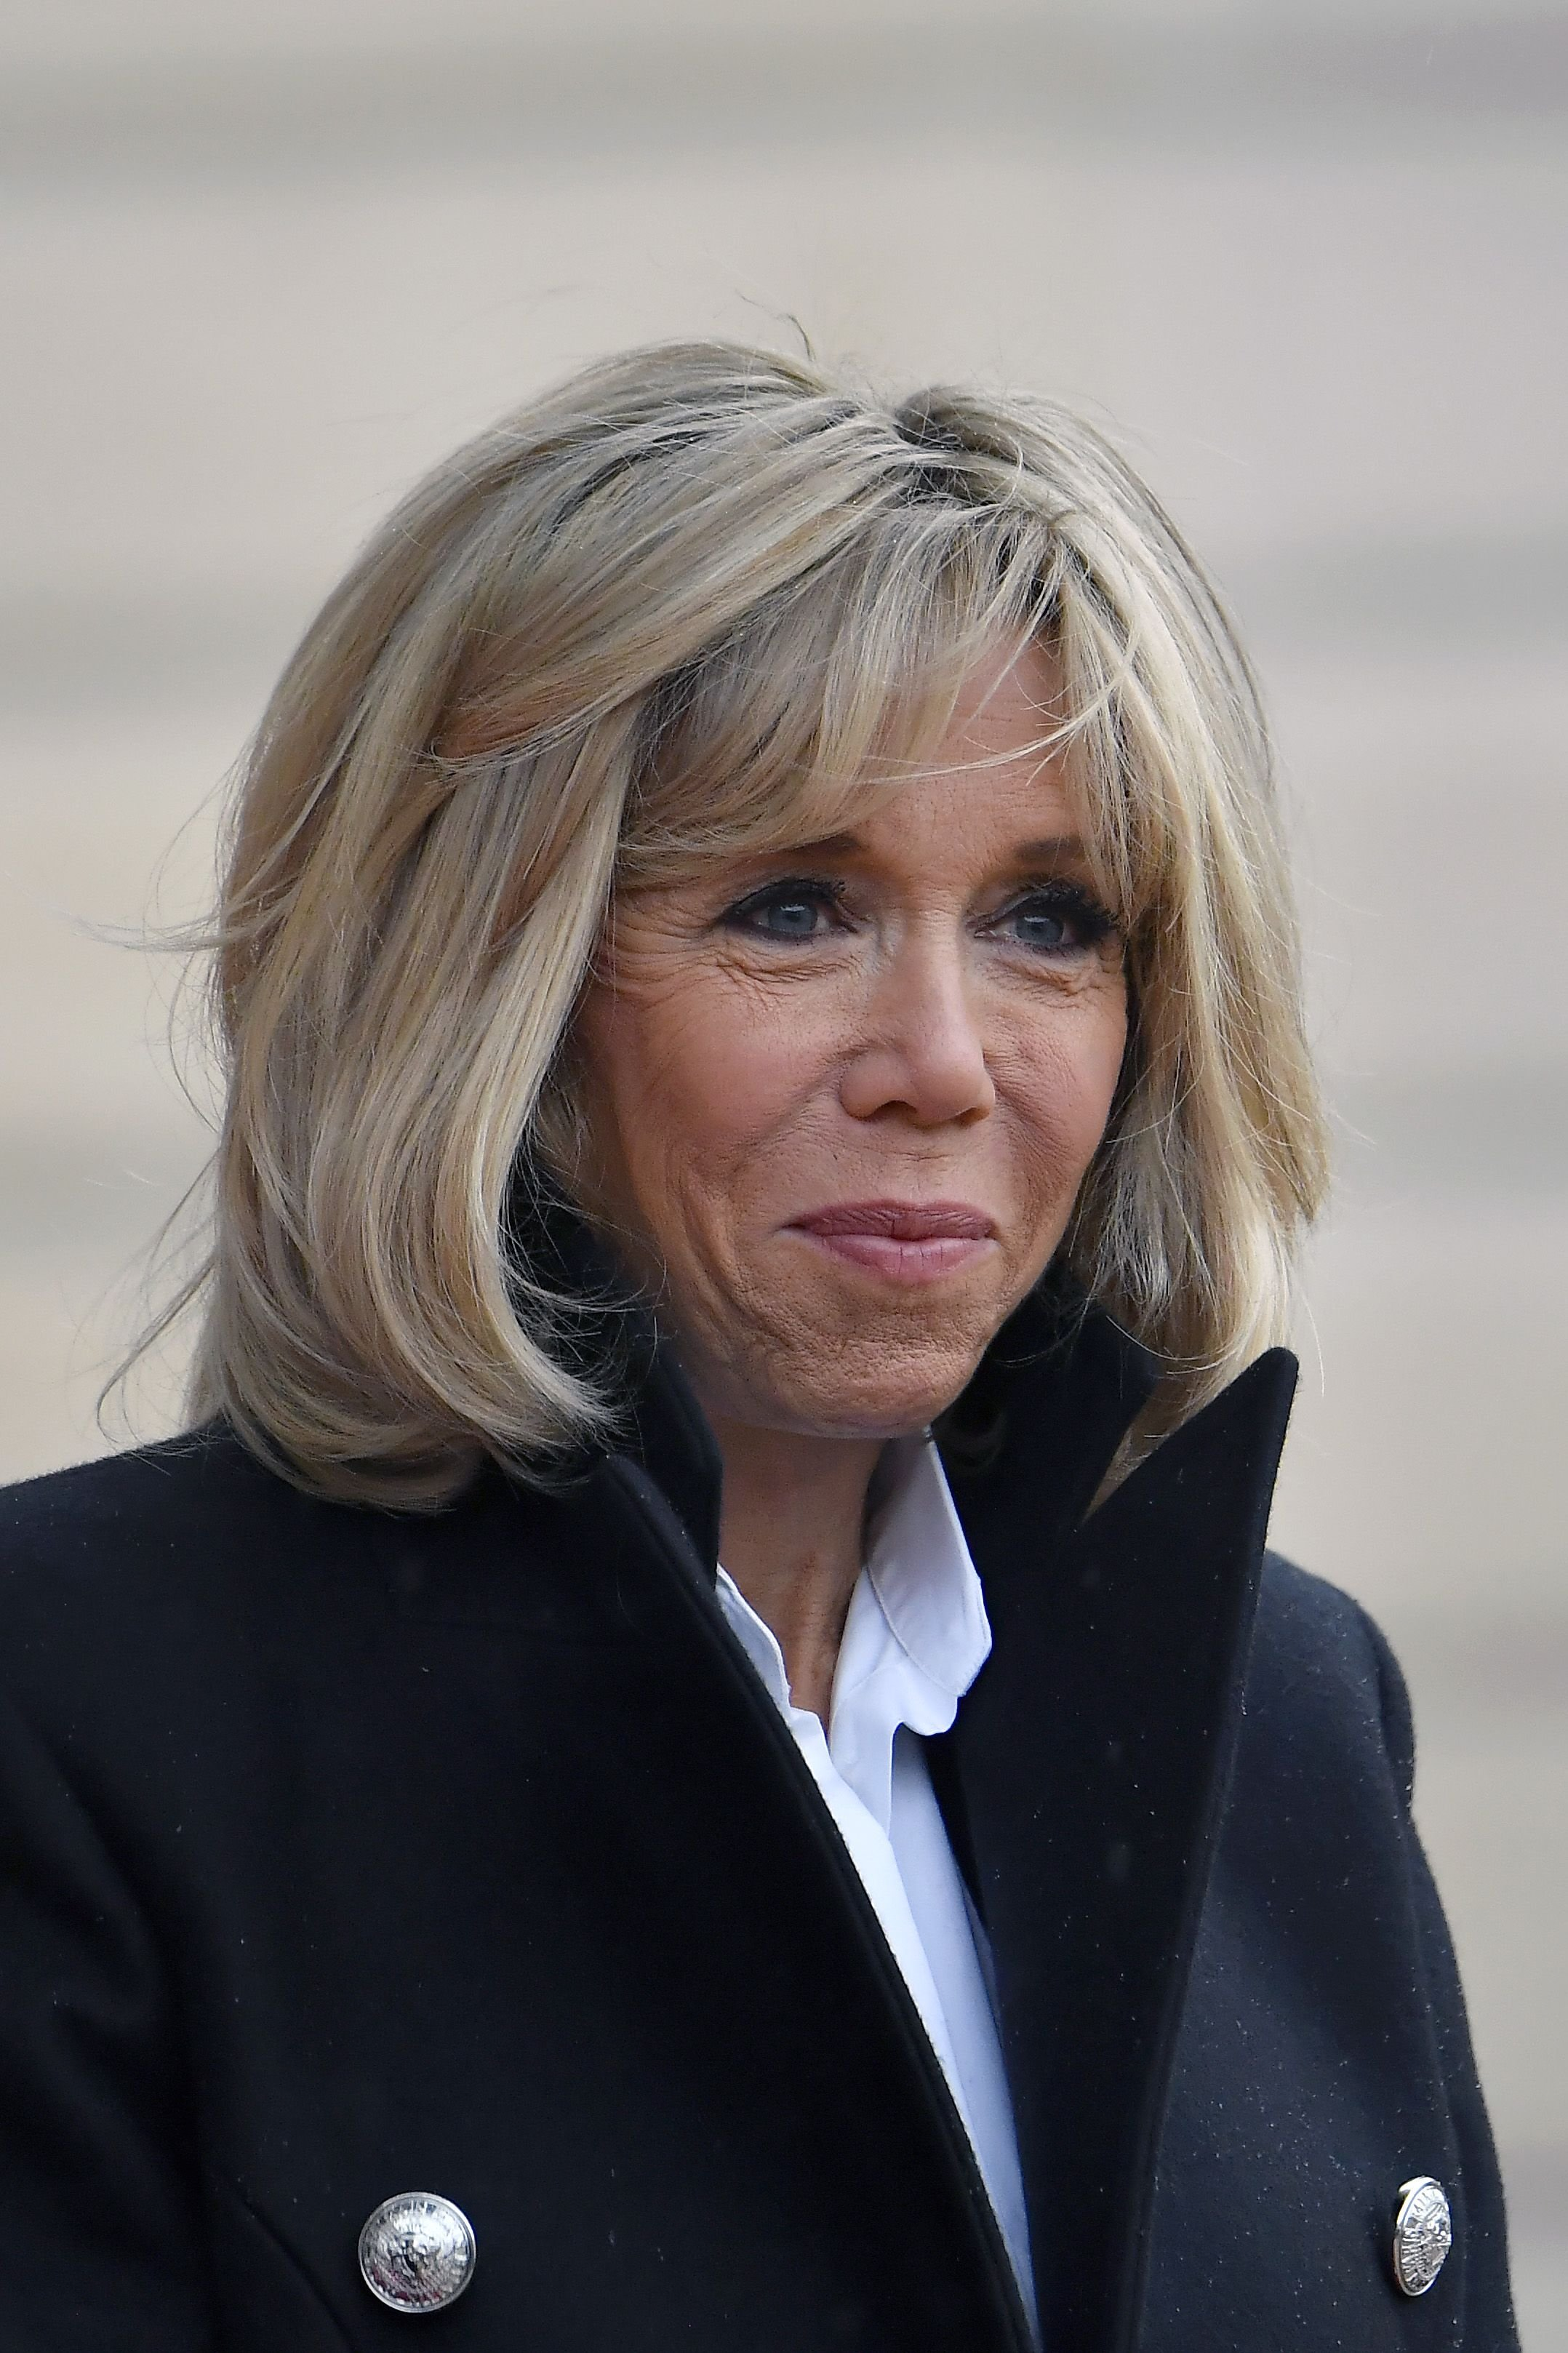 Brigitte Macron à l'Elysée le 11 novembre 2018 à Paris, France.  | Photo : Getty Images